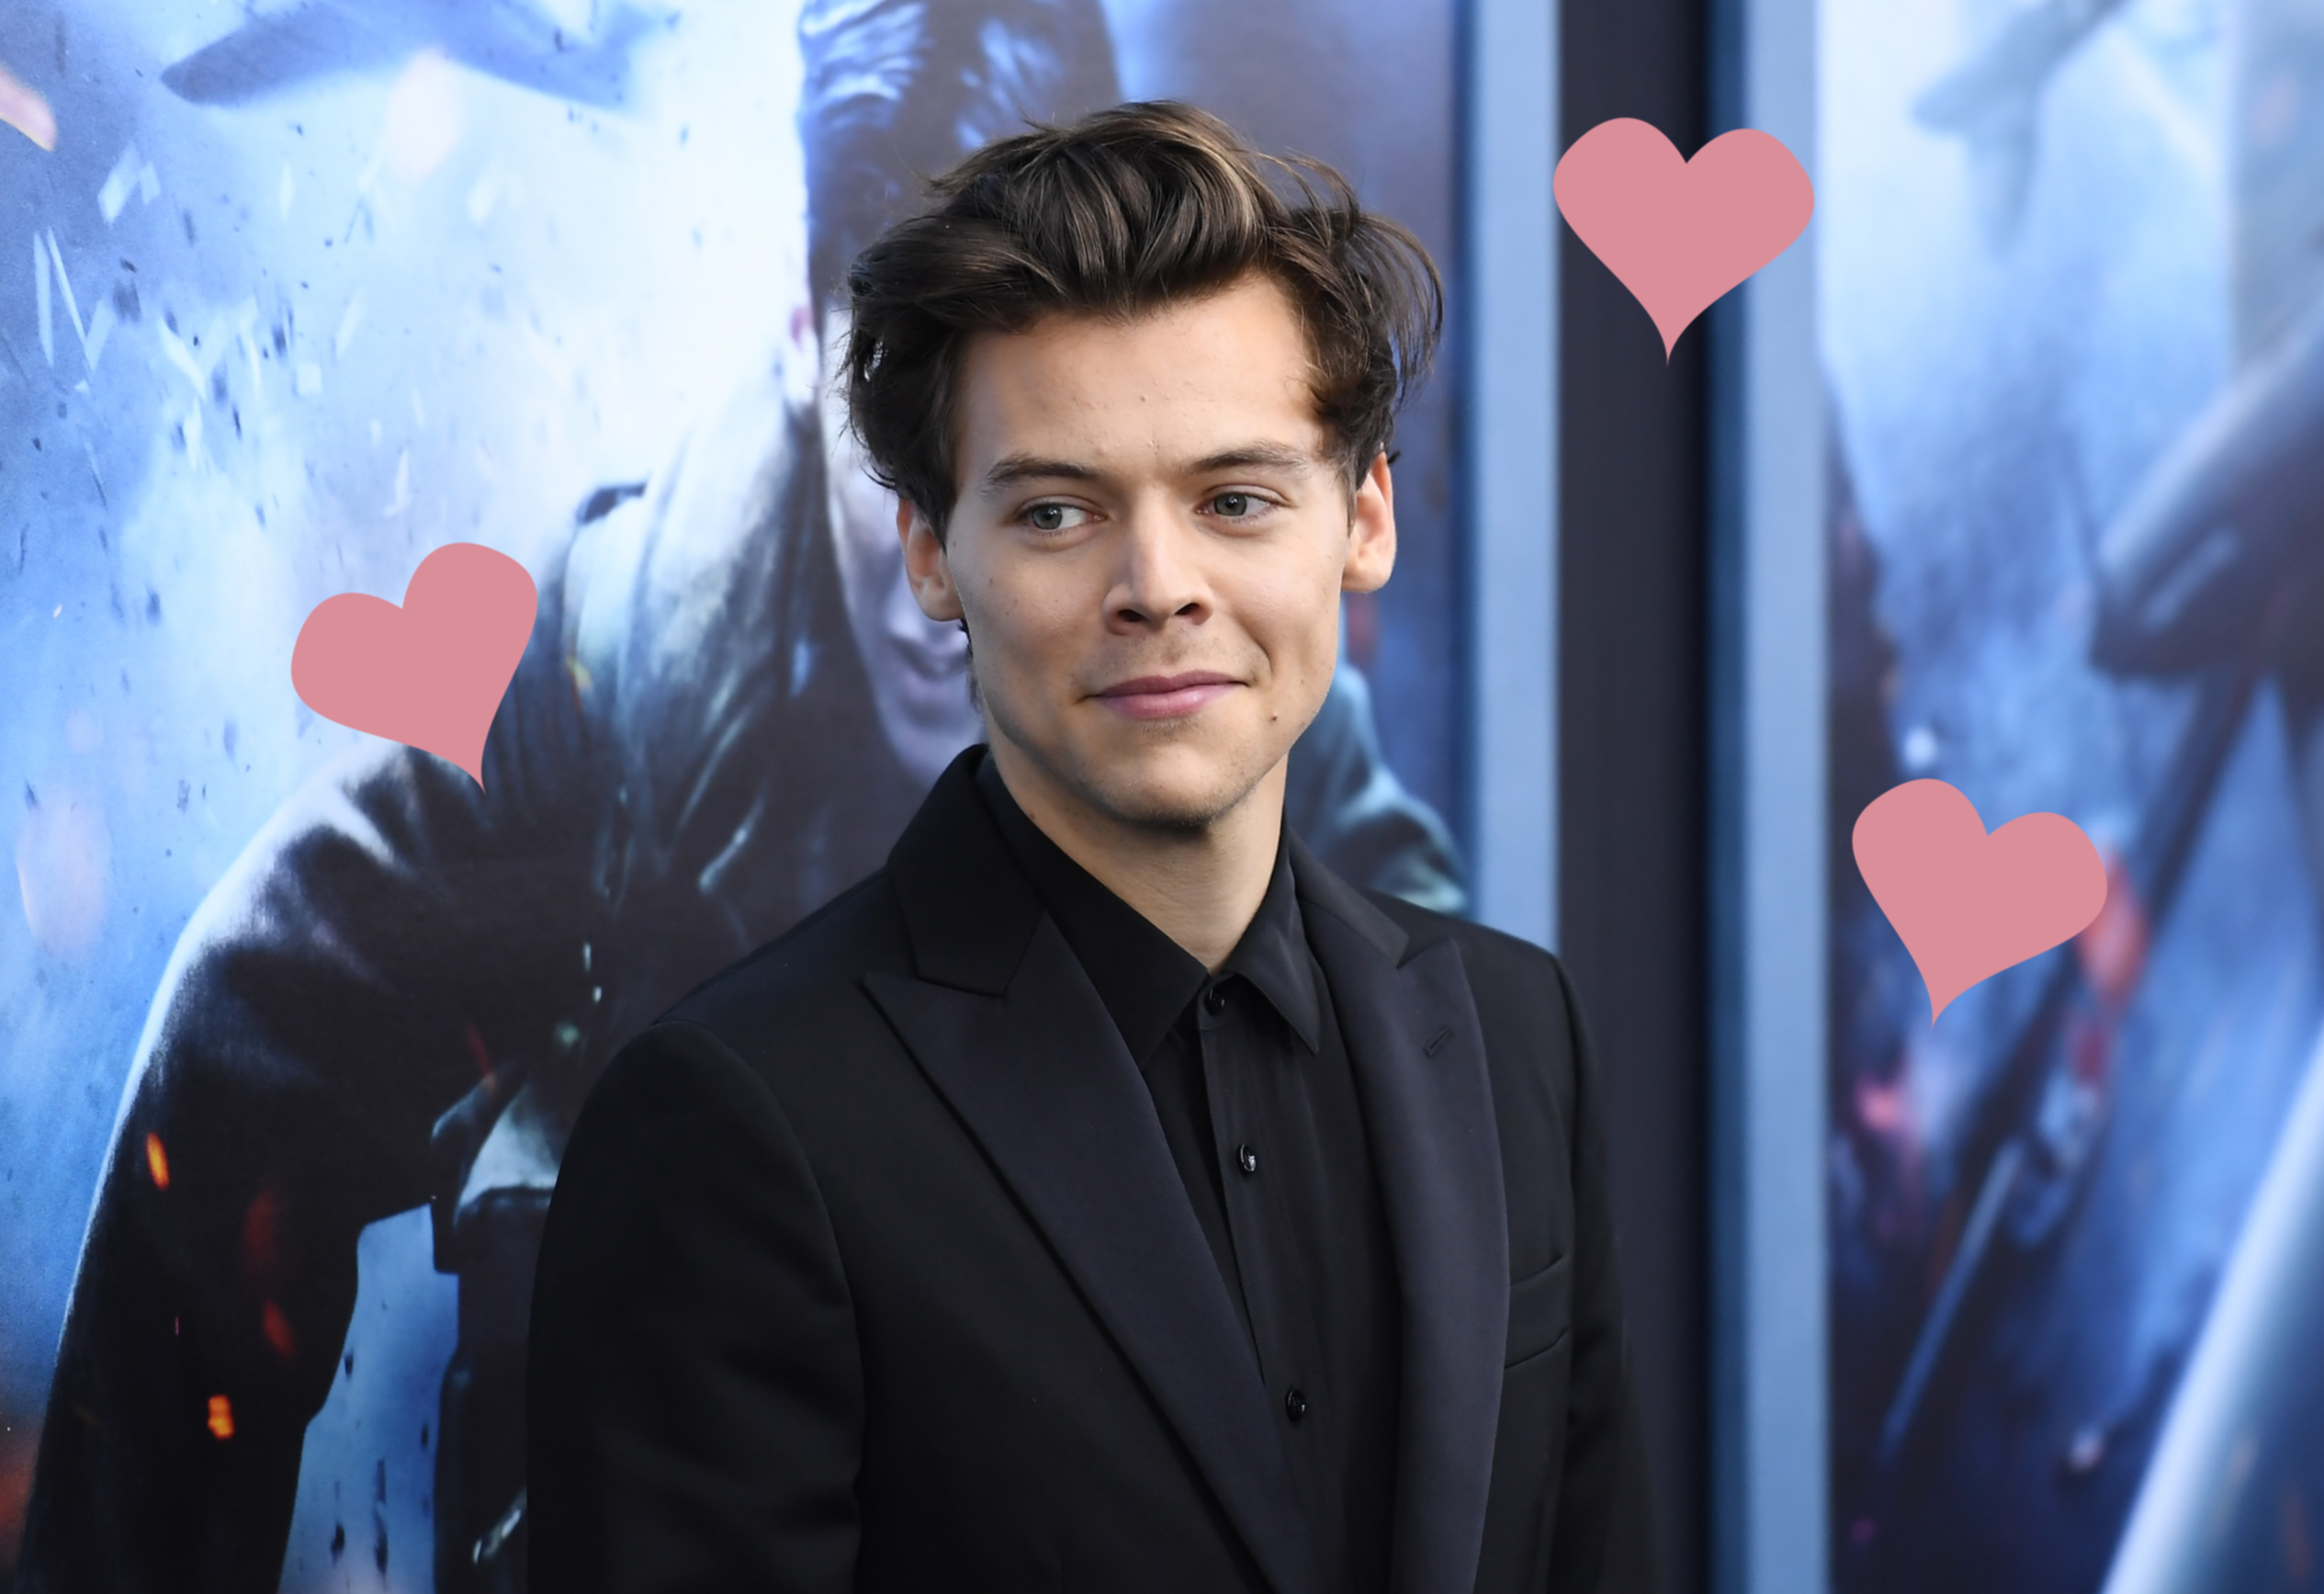 Why you should watch Harry Styles in Dunkirk